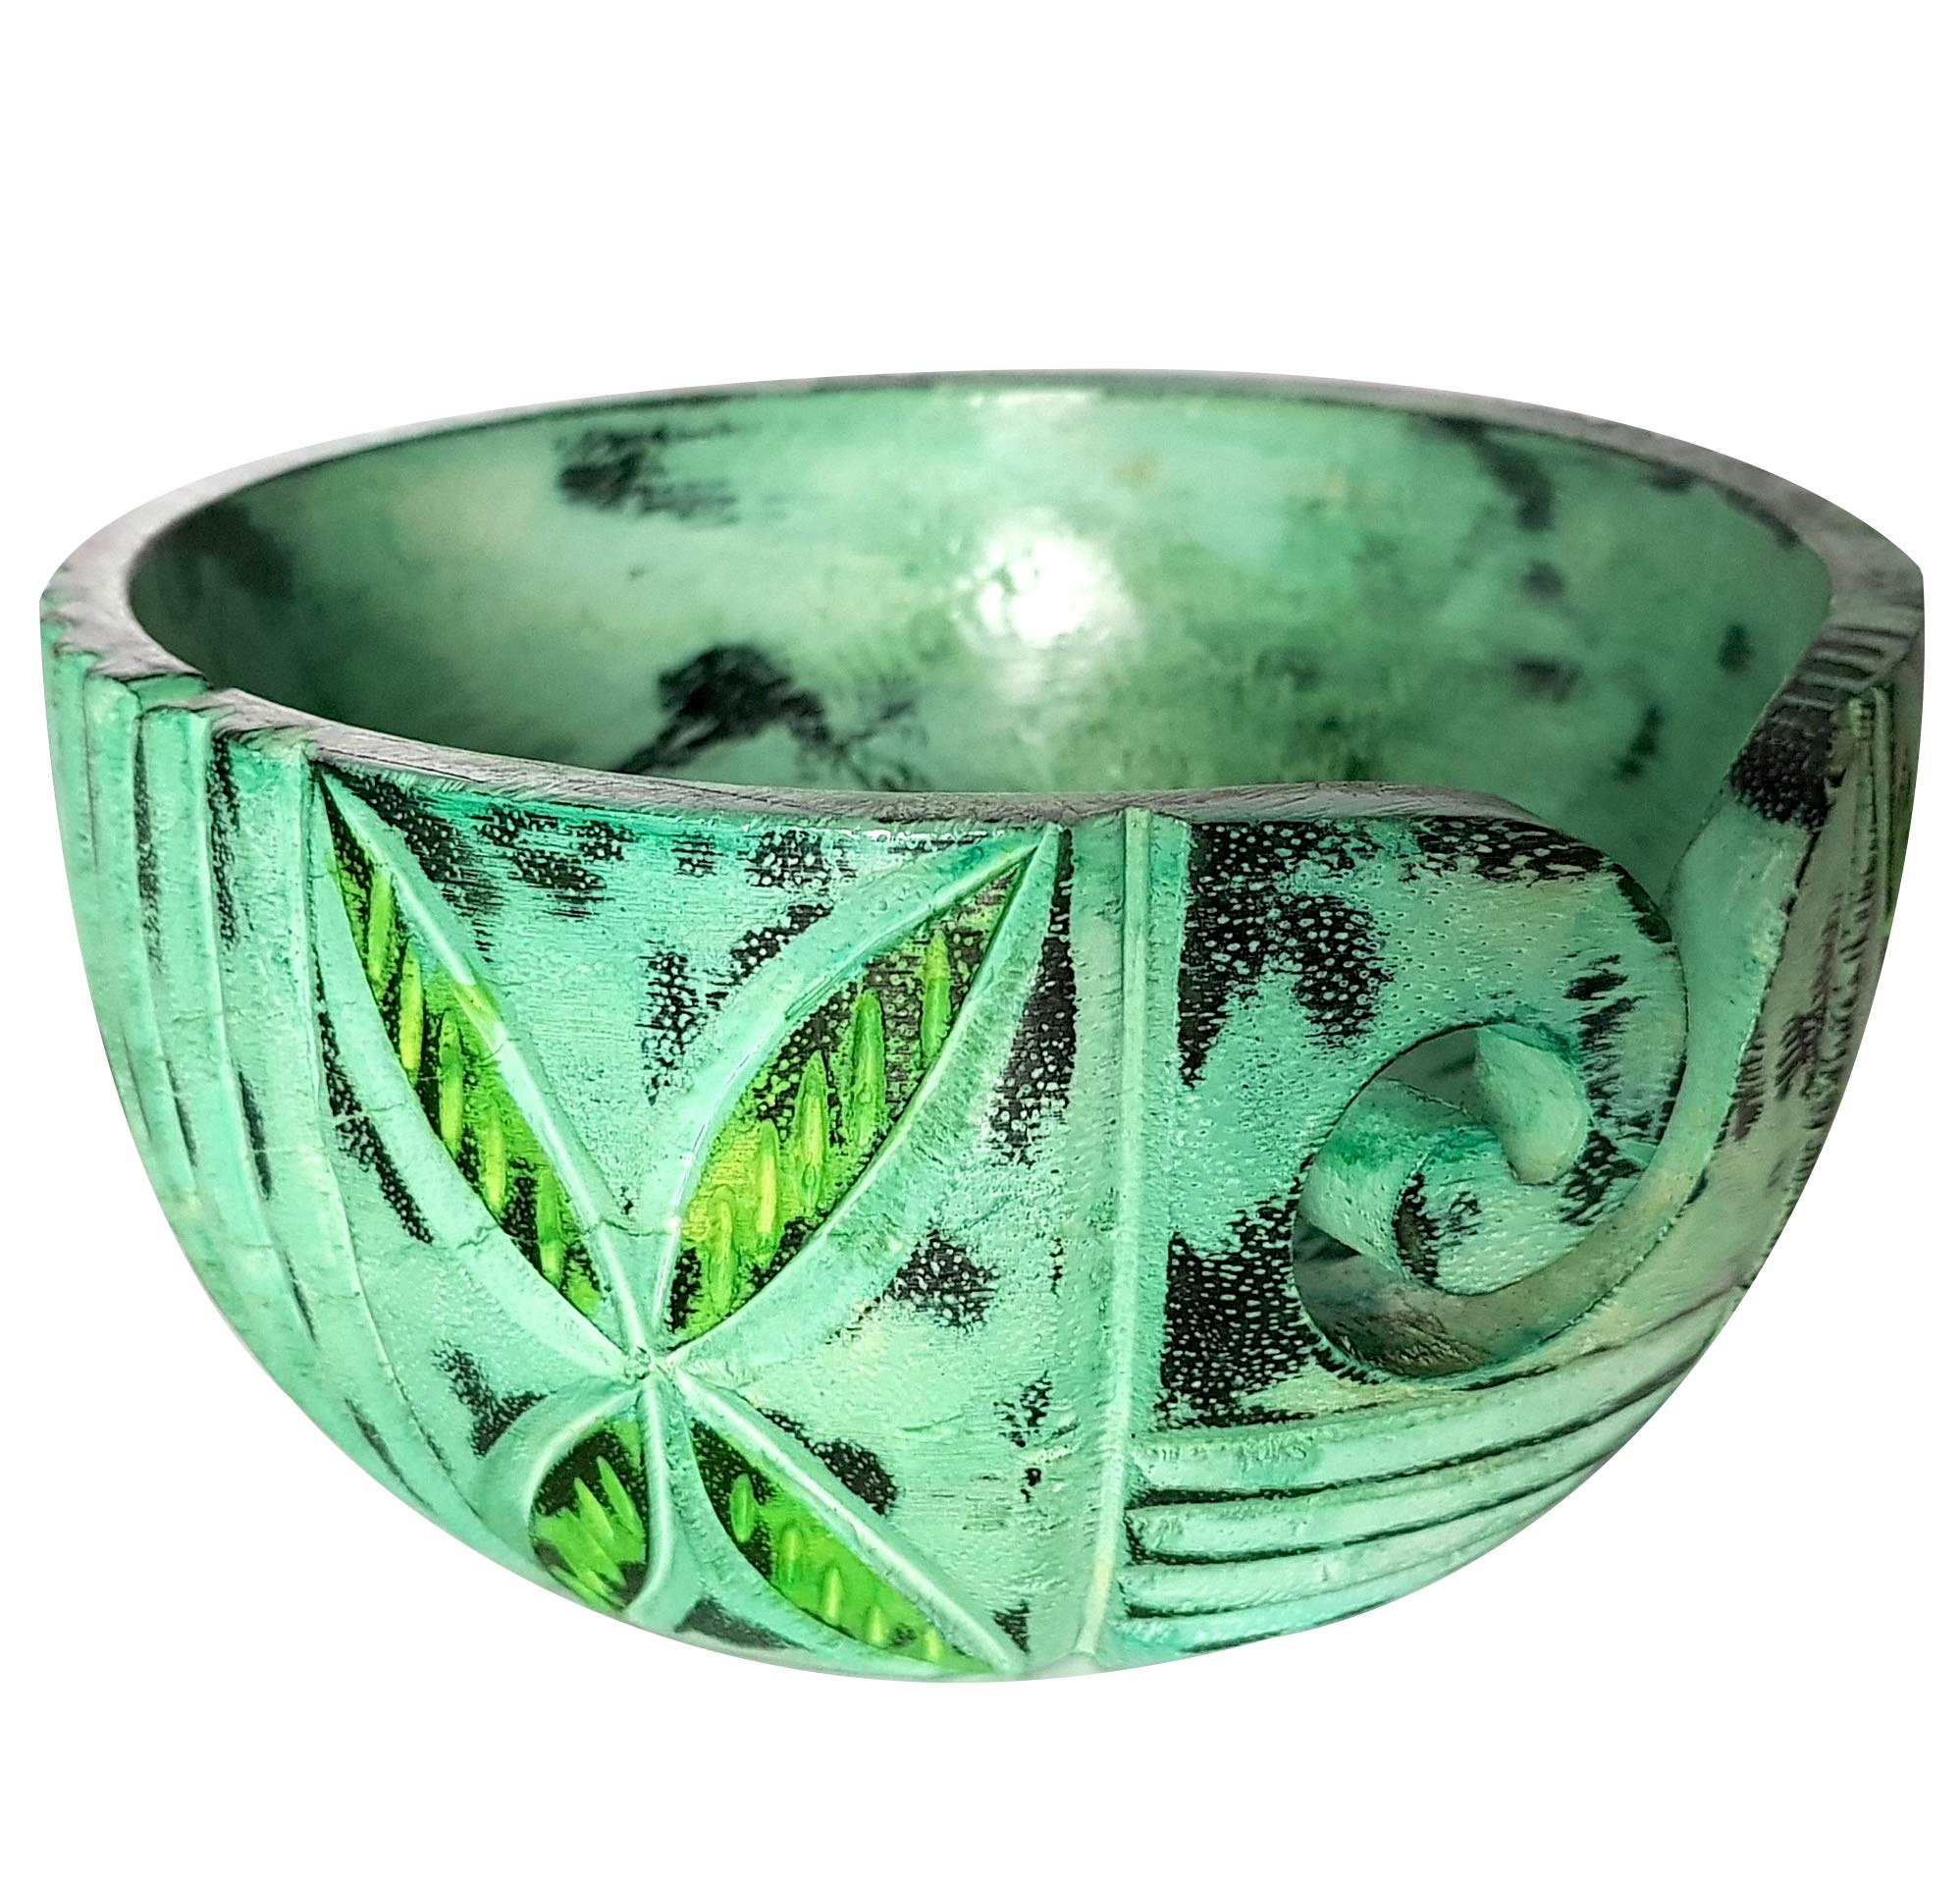 Beautiful Home Decorative Yarn Storage Wooden Bowl Nautical Handmade Green Retro Look Article - Vintage Gifts Collection